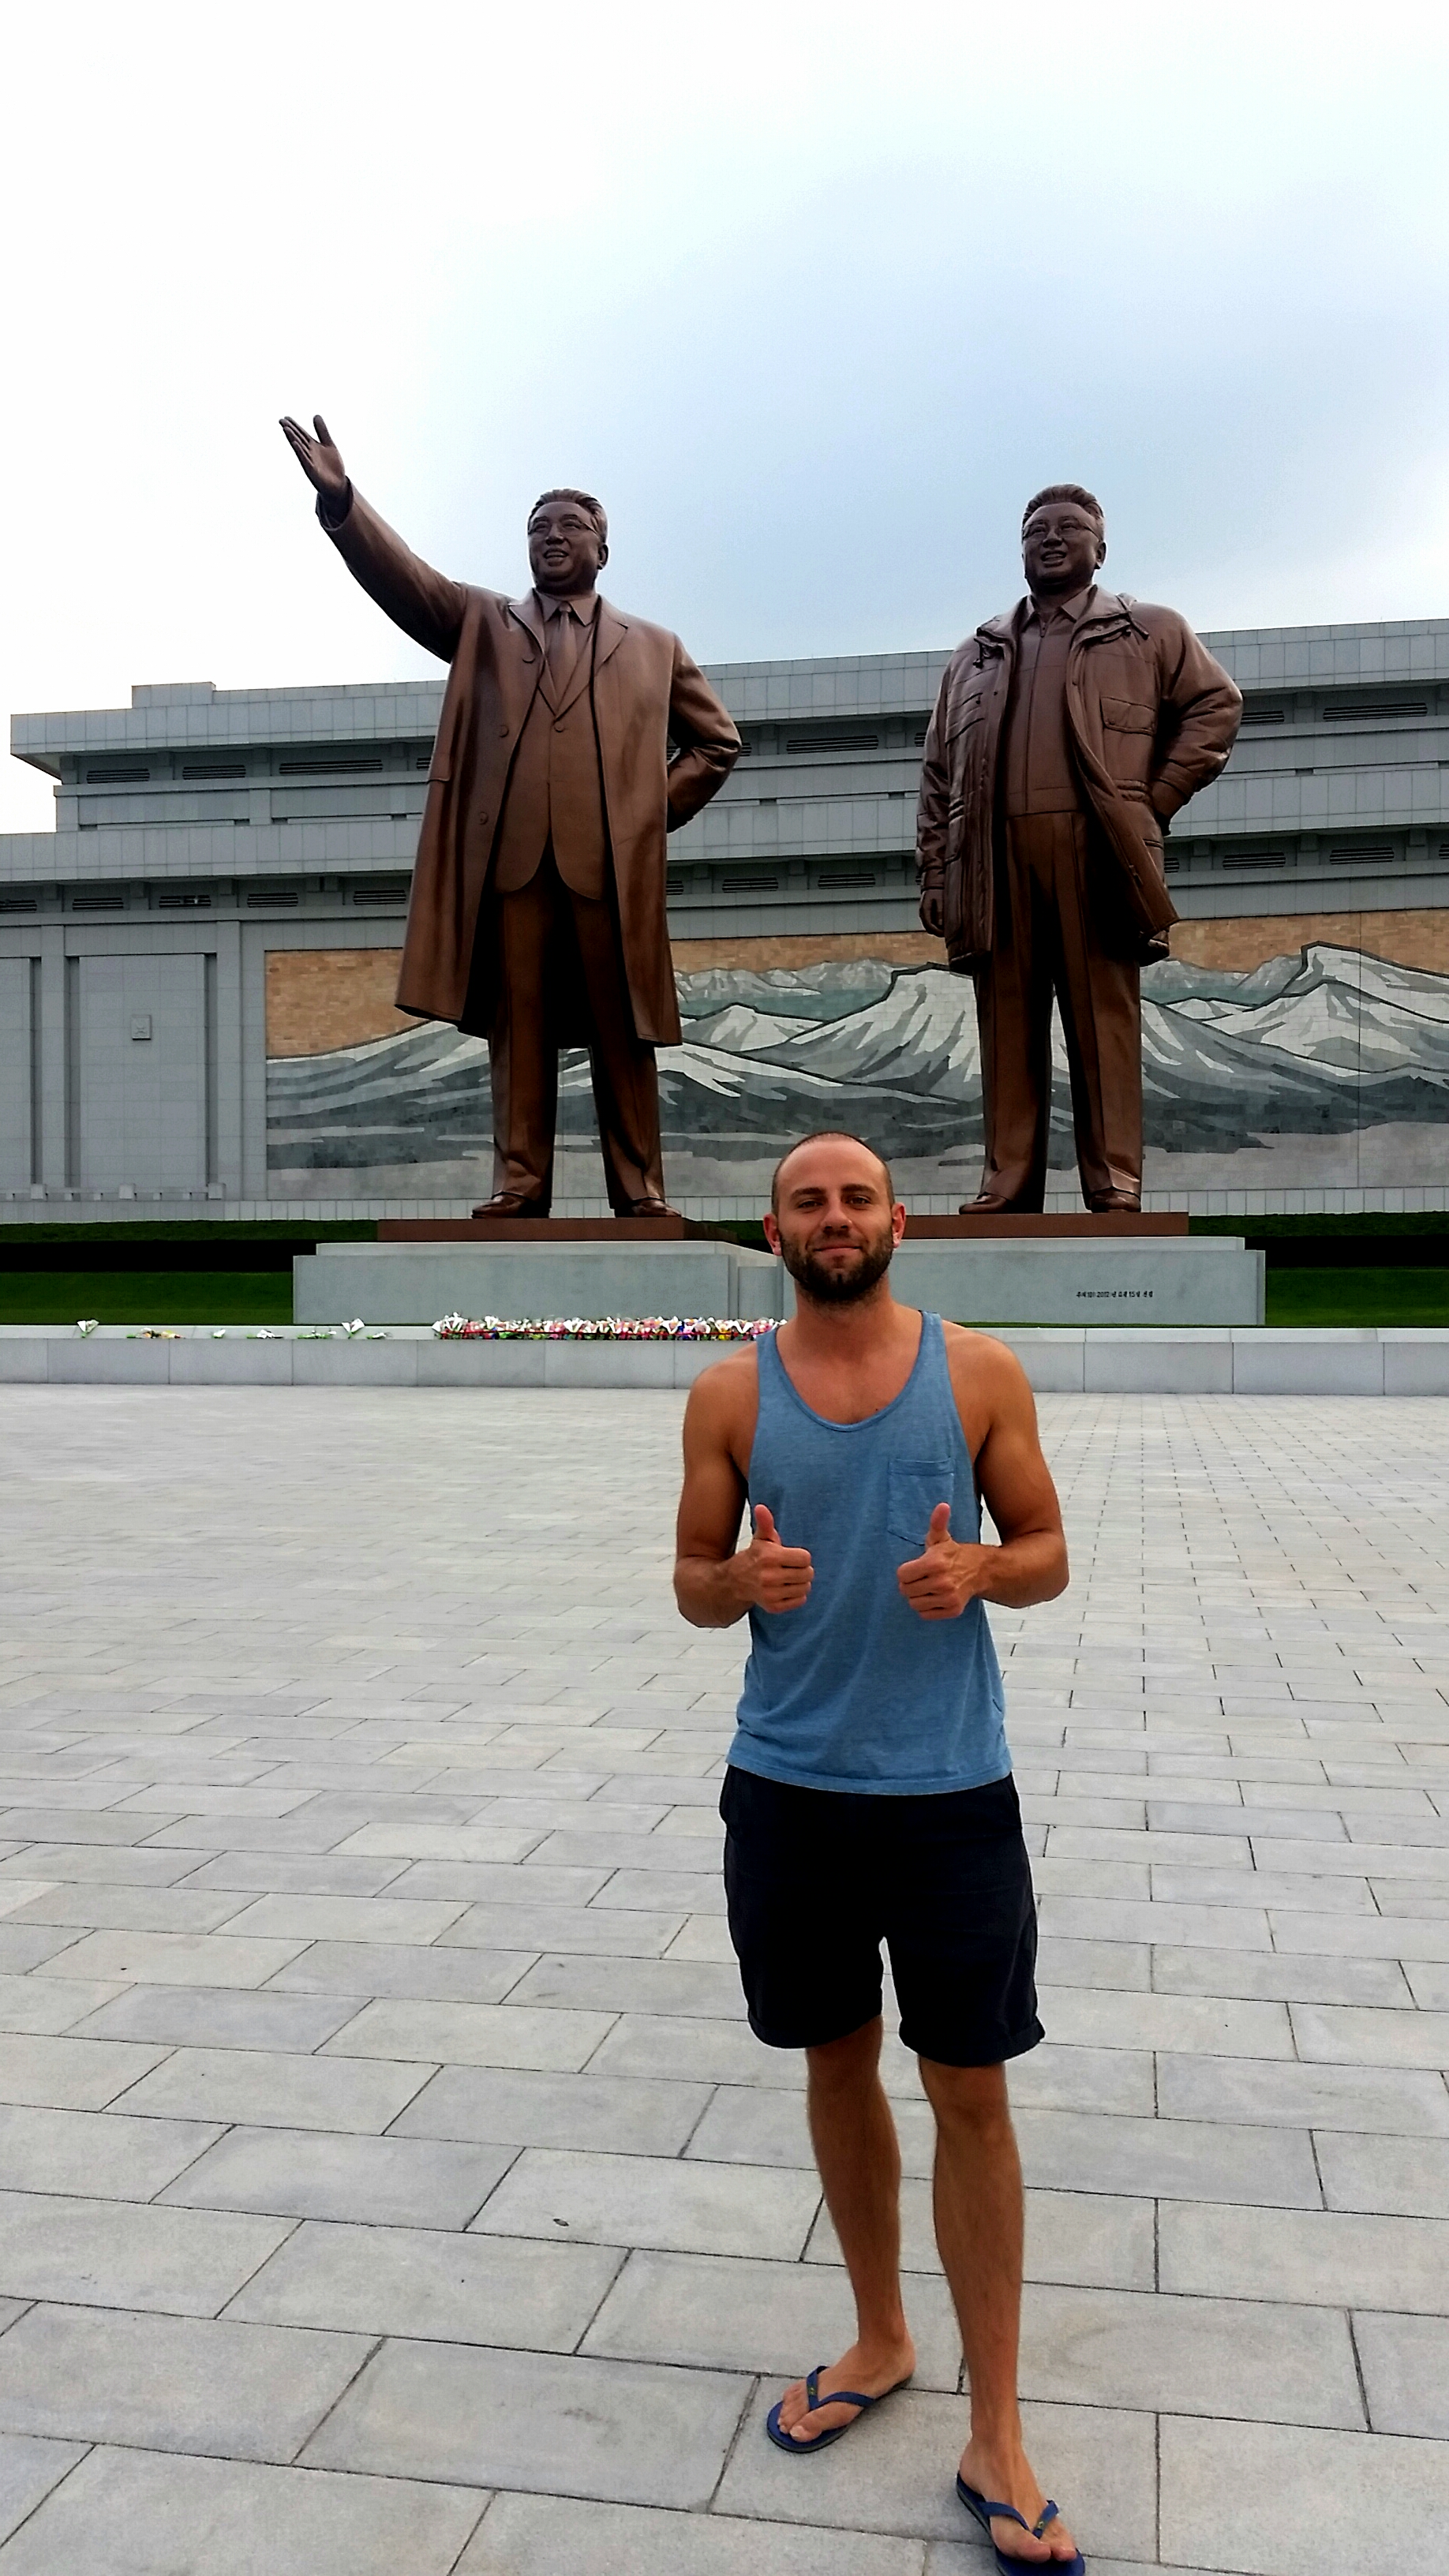 Orange human stands next to giant bronze eternal leaders. If countries were measured by the size and quantity of statues, then DPRK would be right up there with the best! Alas, they are not. Frustratingly, things like access to sanitation and food are considered more important.